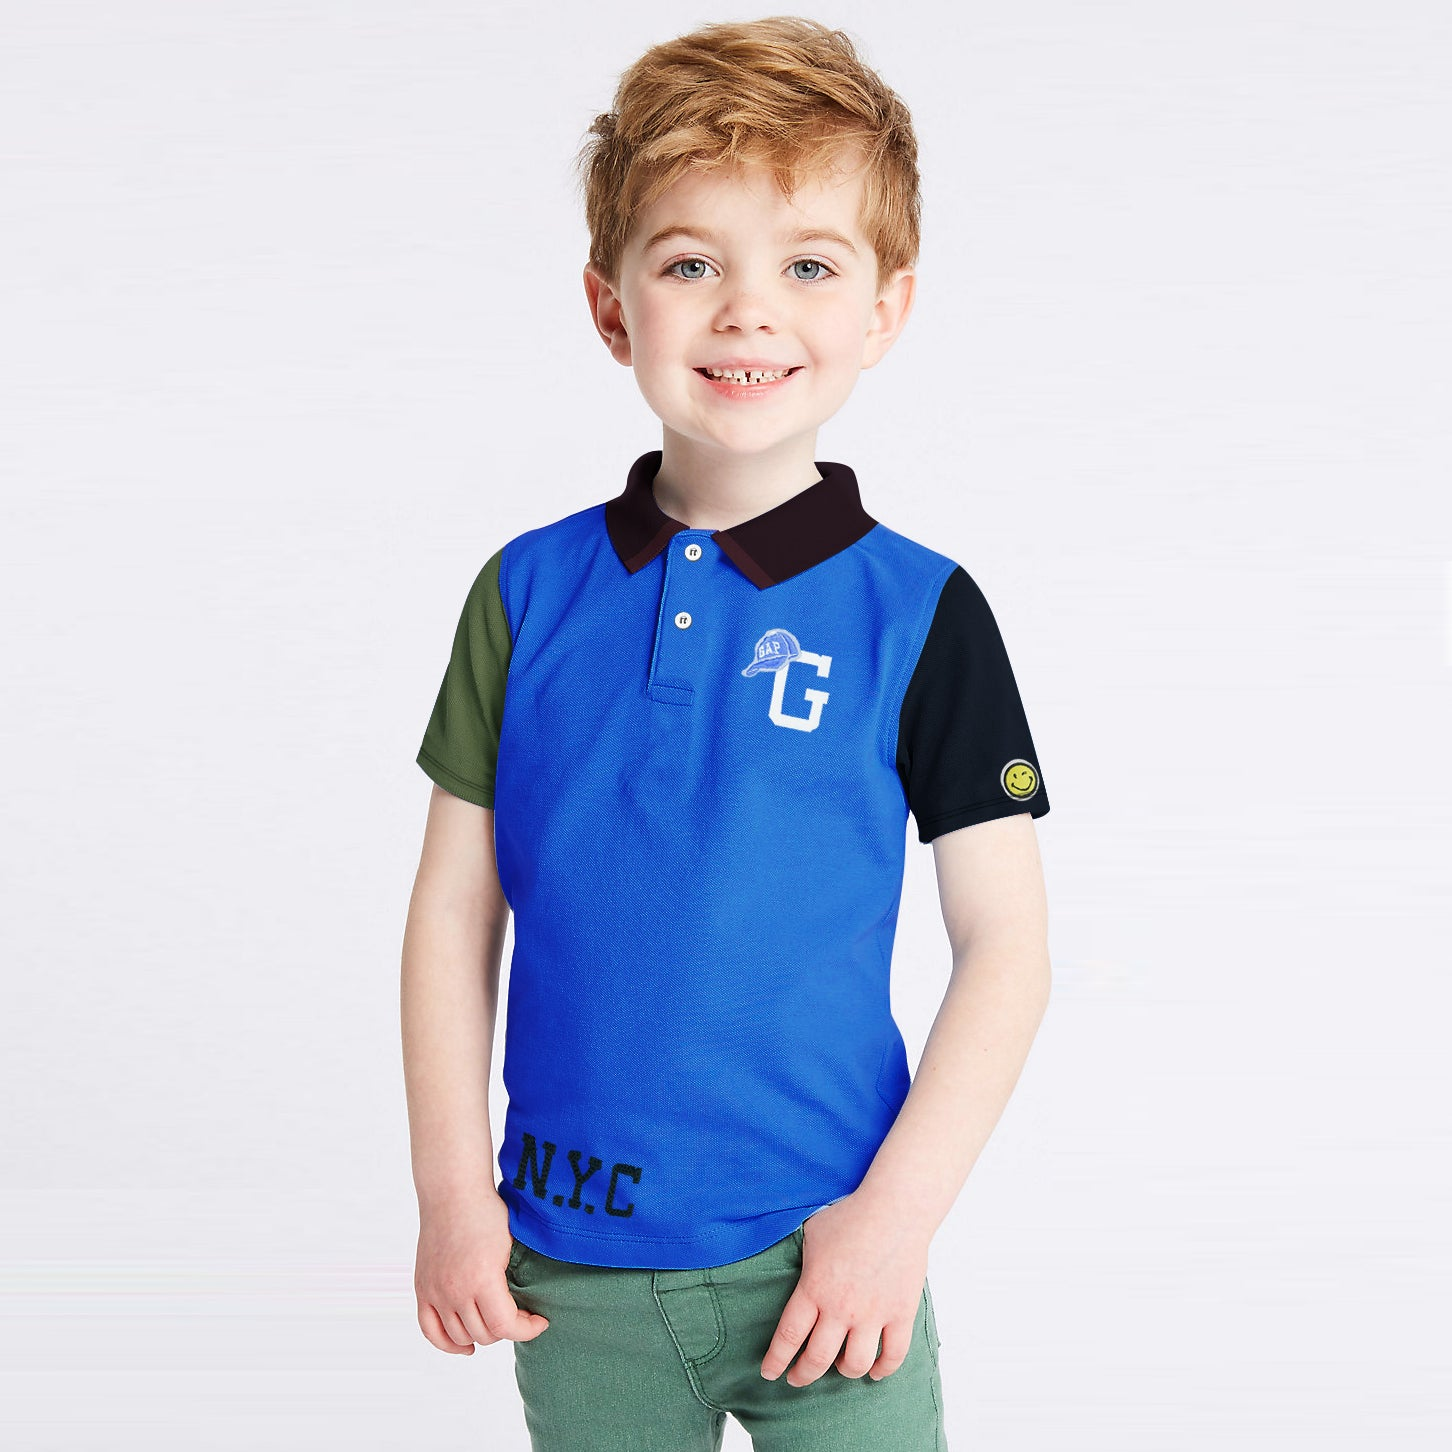 GAP Half Sleeve P.Q Polo Shirt For Kids-BE8526